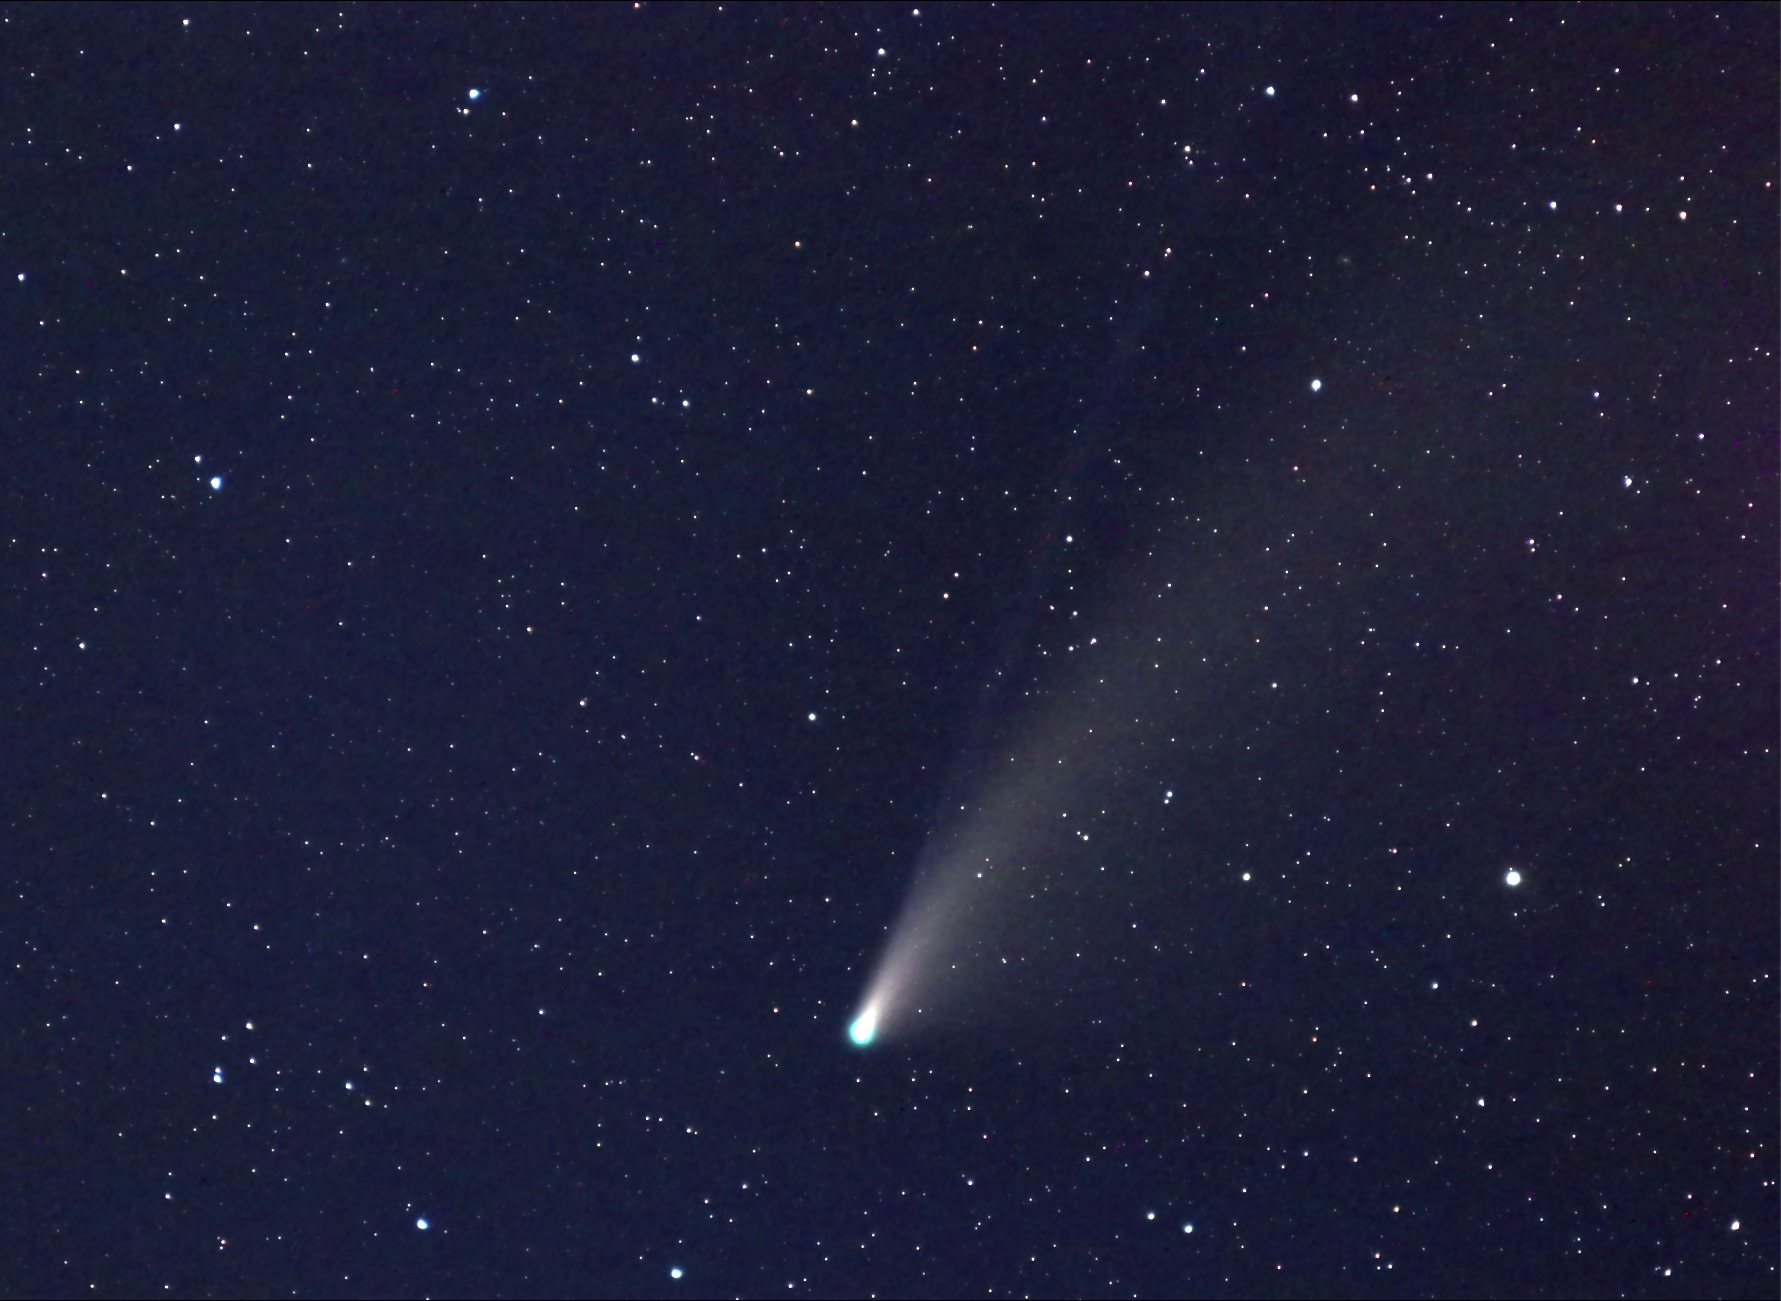 Comet NEOWISE against a backdrop of stars. Photo courtesy astrophotographer George Normandin.